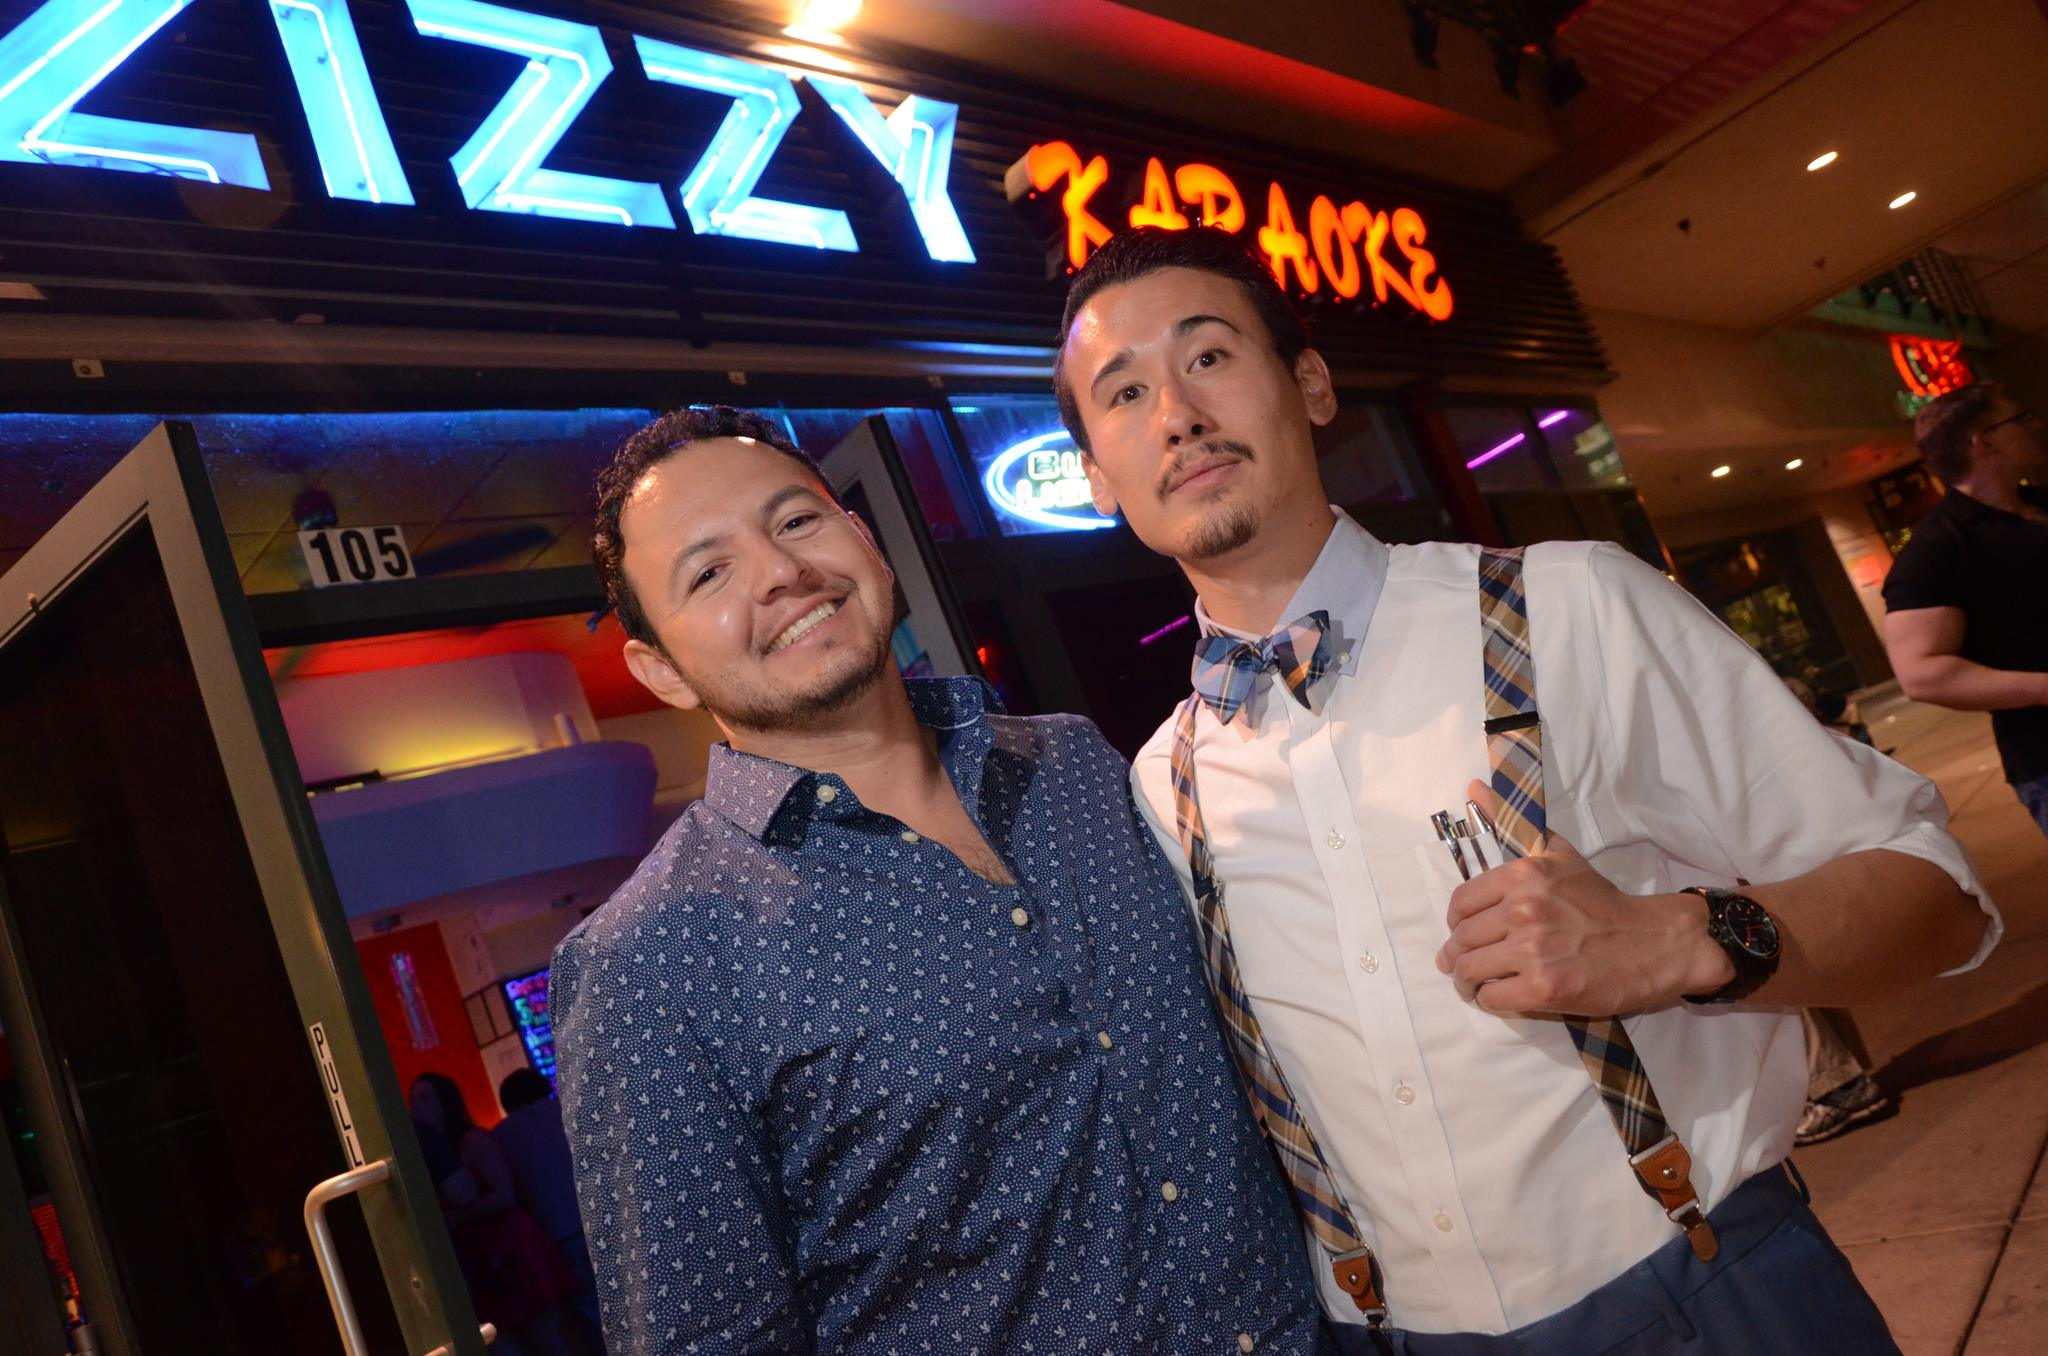 Two men stand outside of Zizzy Karaoke Bar Las Vegas and are smiling, one has thumb up